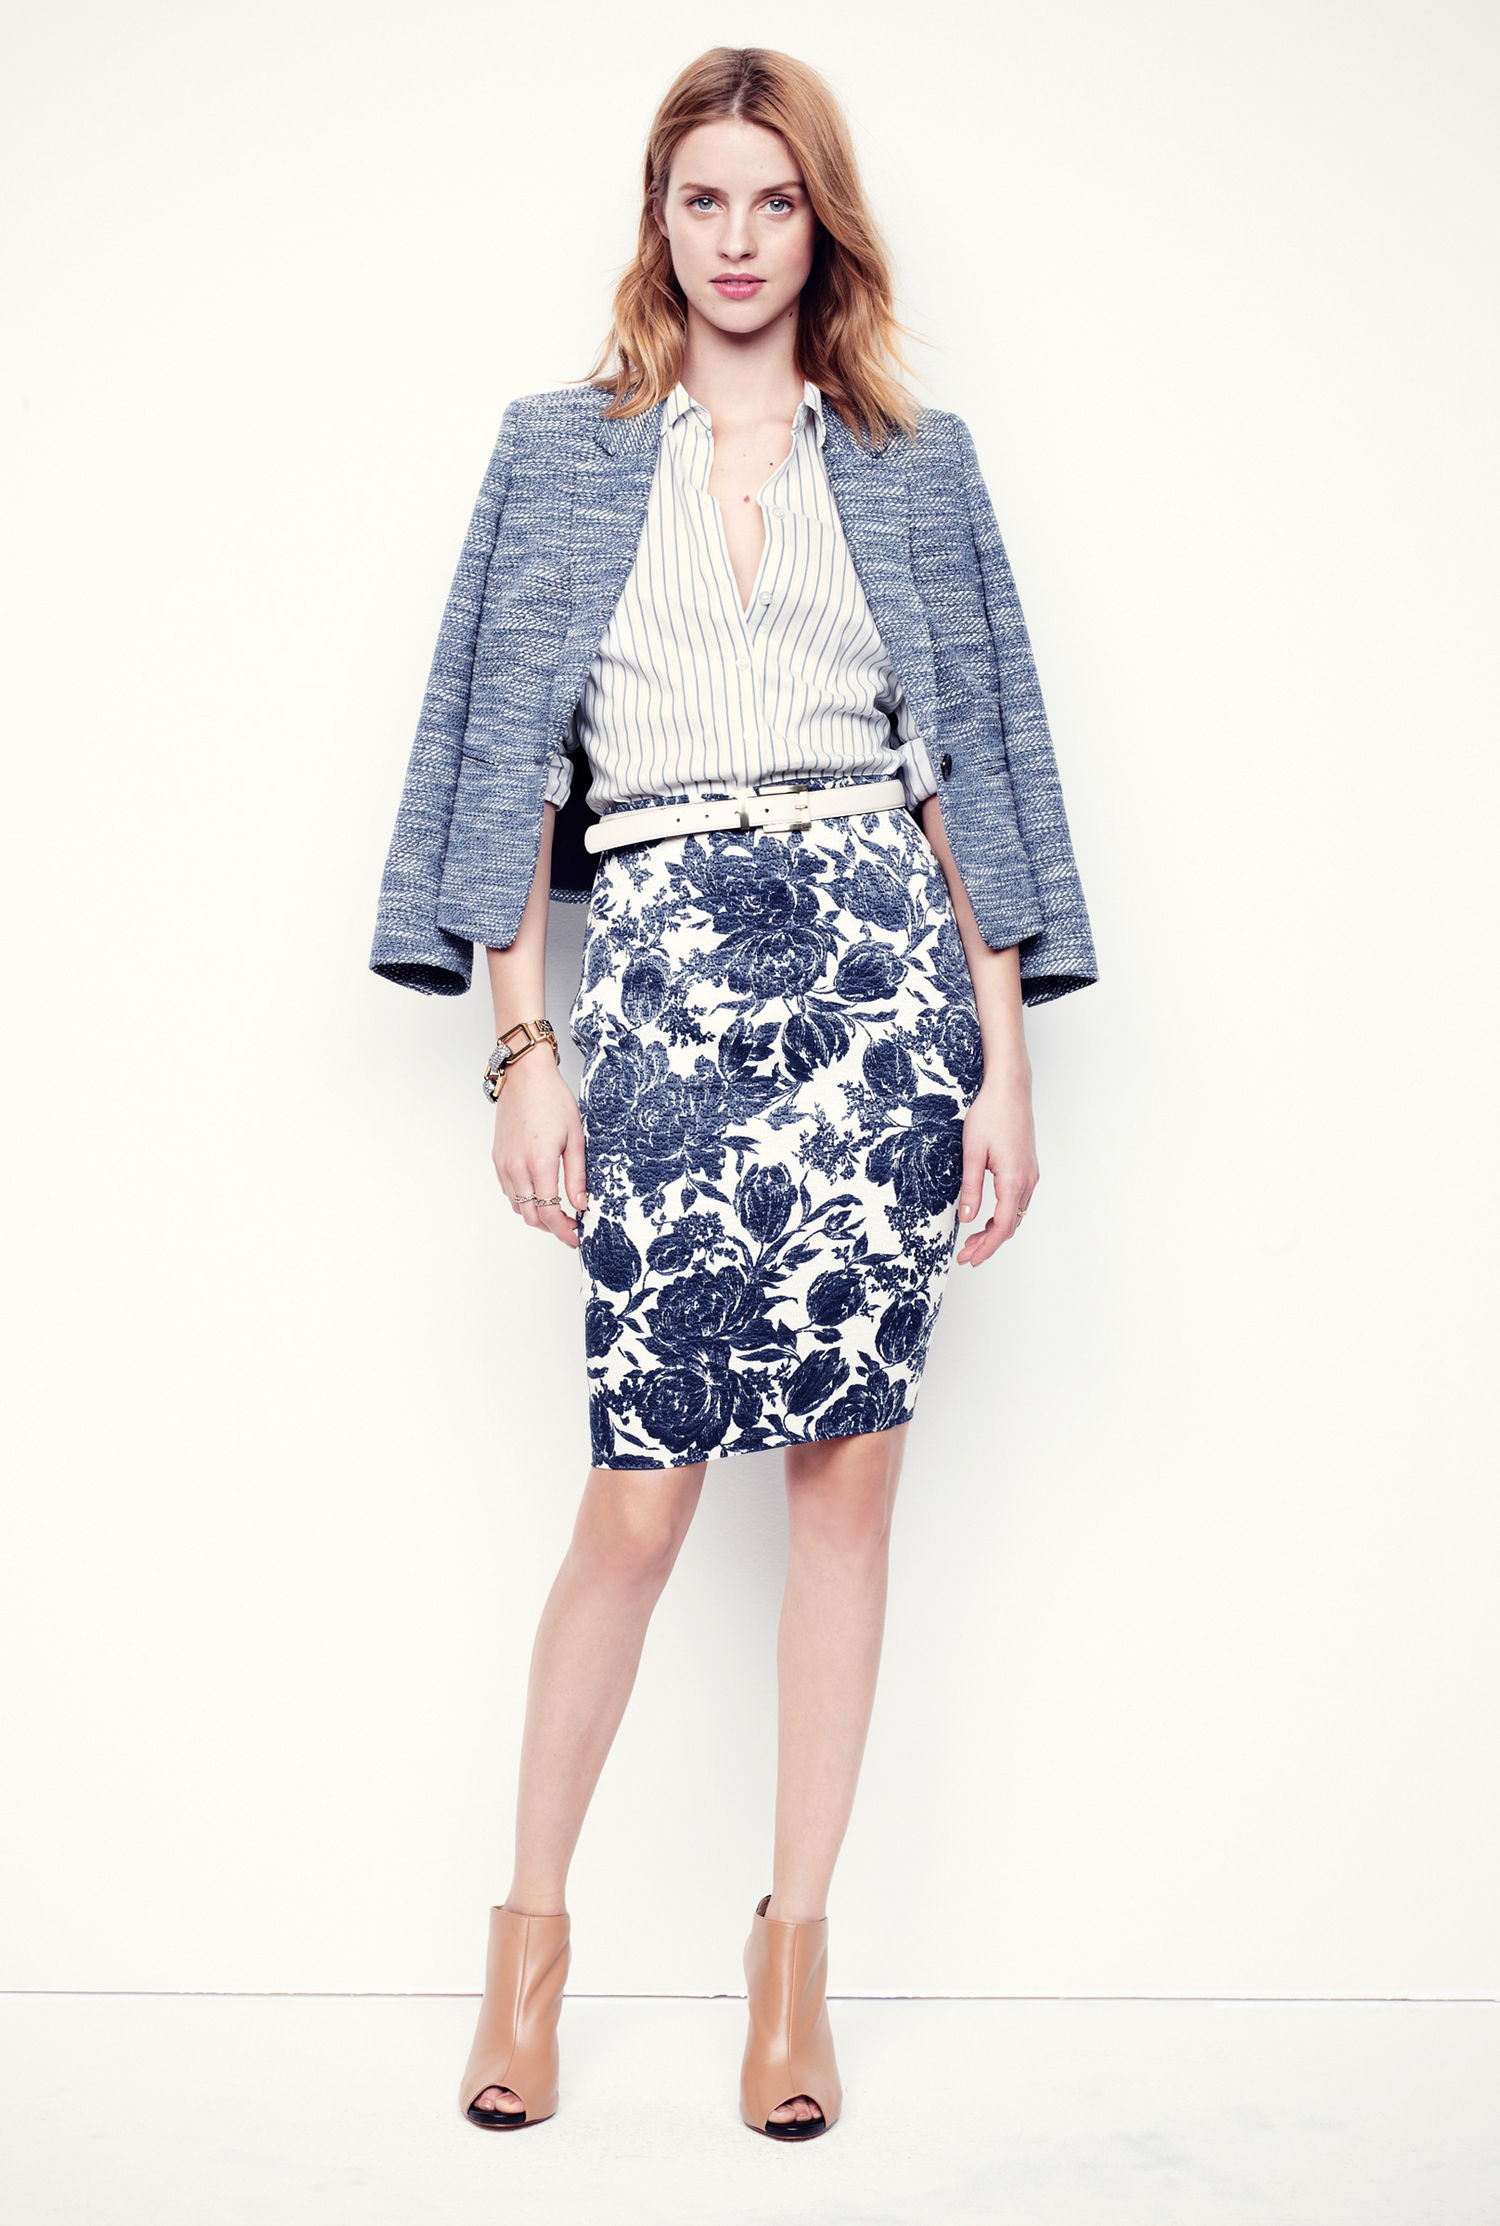 ann-taylor-blue-suit-mixed-print-spring-2014-main